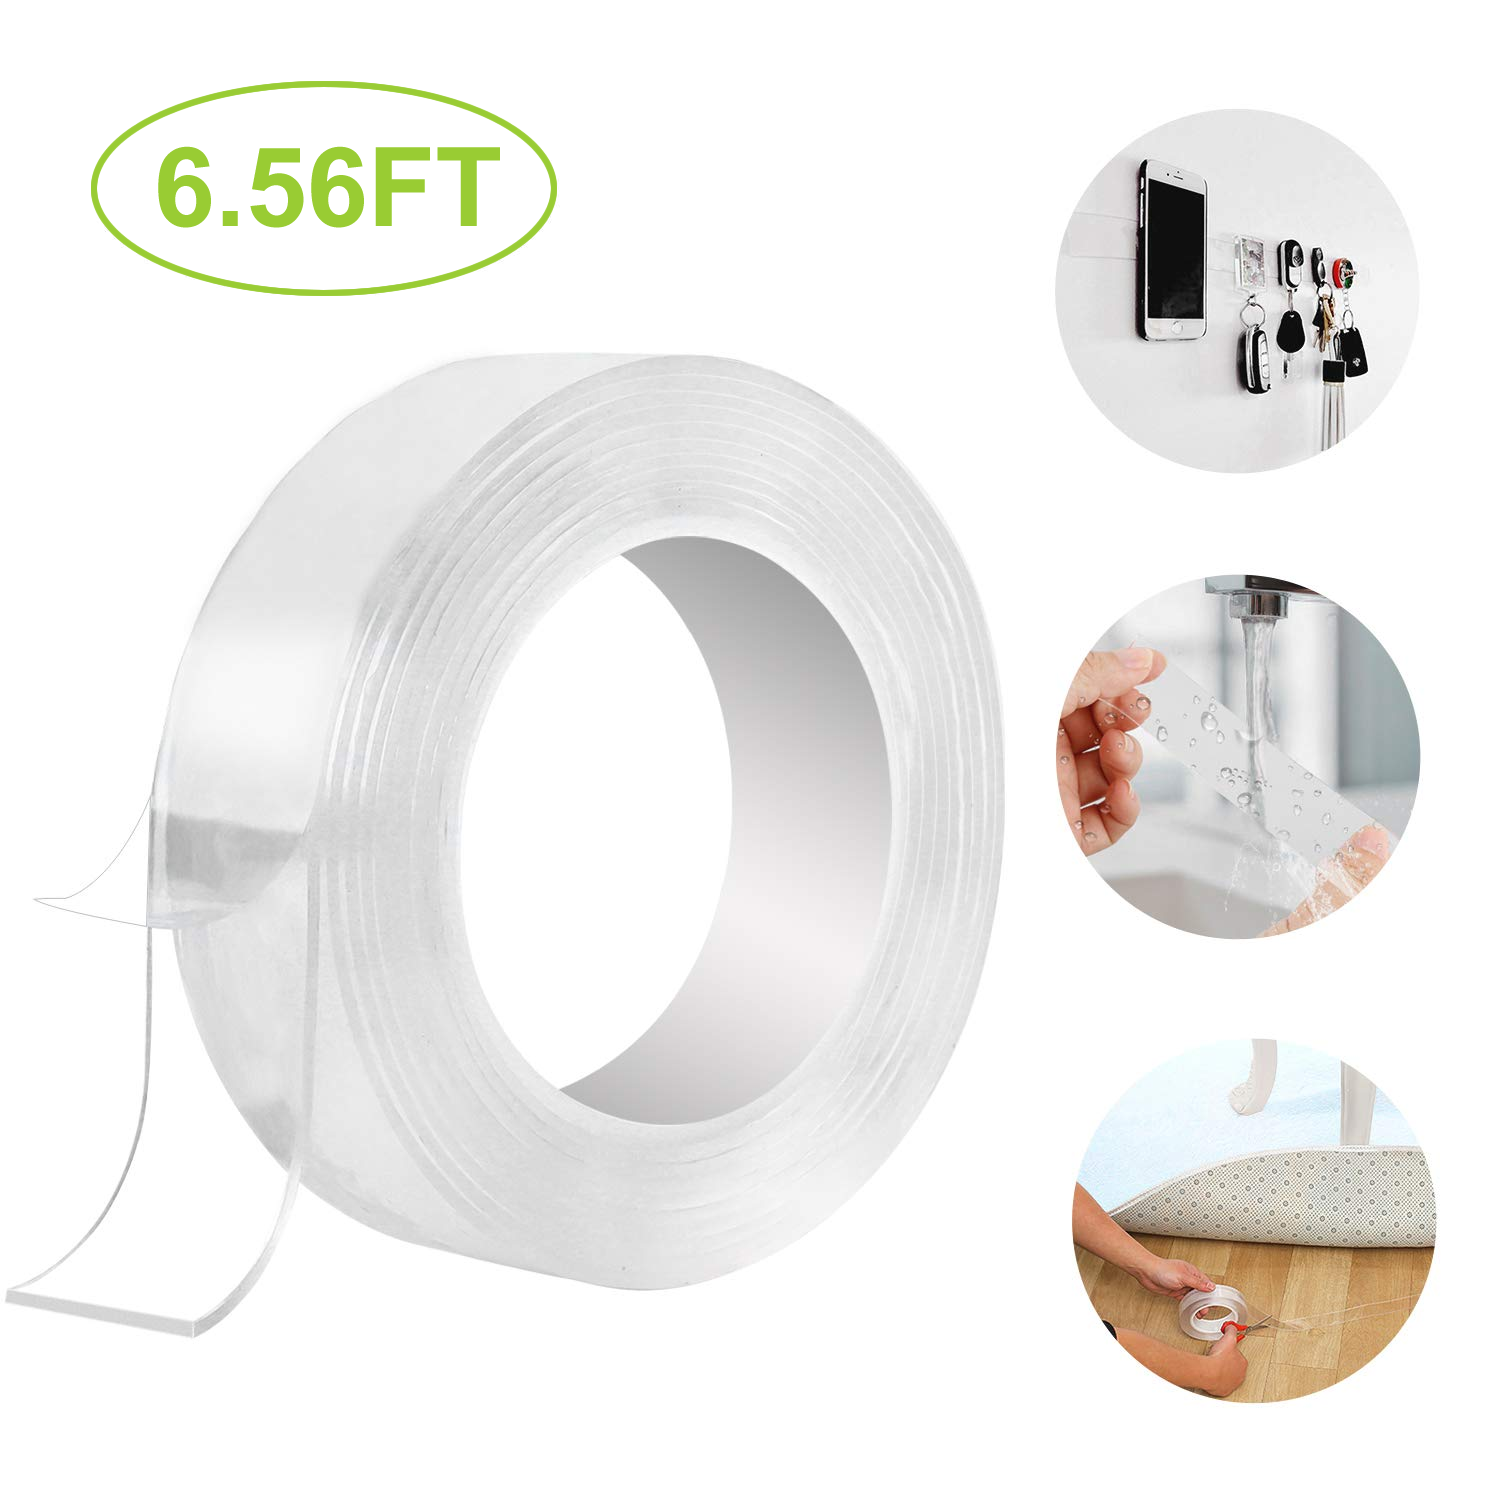 1 m// 3.28 Feet Per Roll 3 Rolls Nano Tape Set Adhesive Silicone Tape Washable Reusable Traceless Stick to Glass//Metal//Kitchen Cabinets//Tile Nano Tape